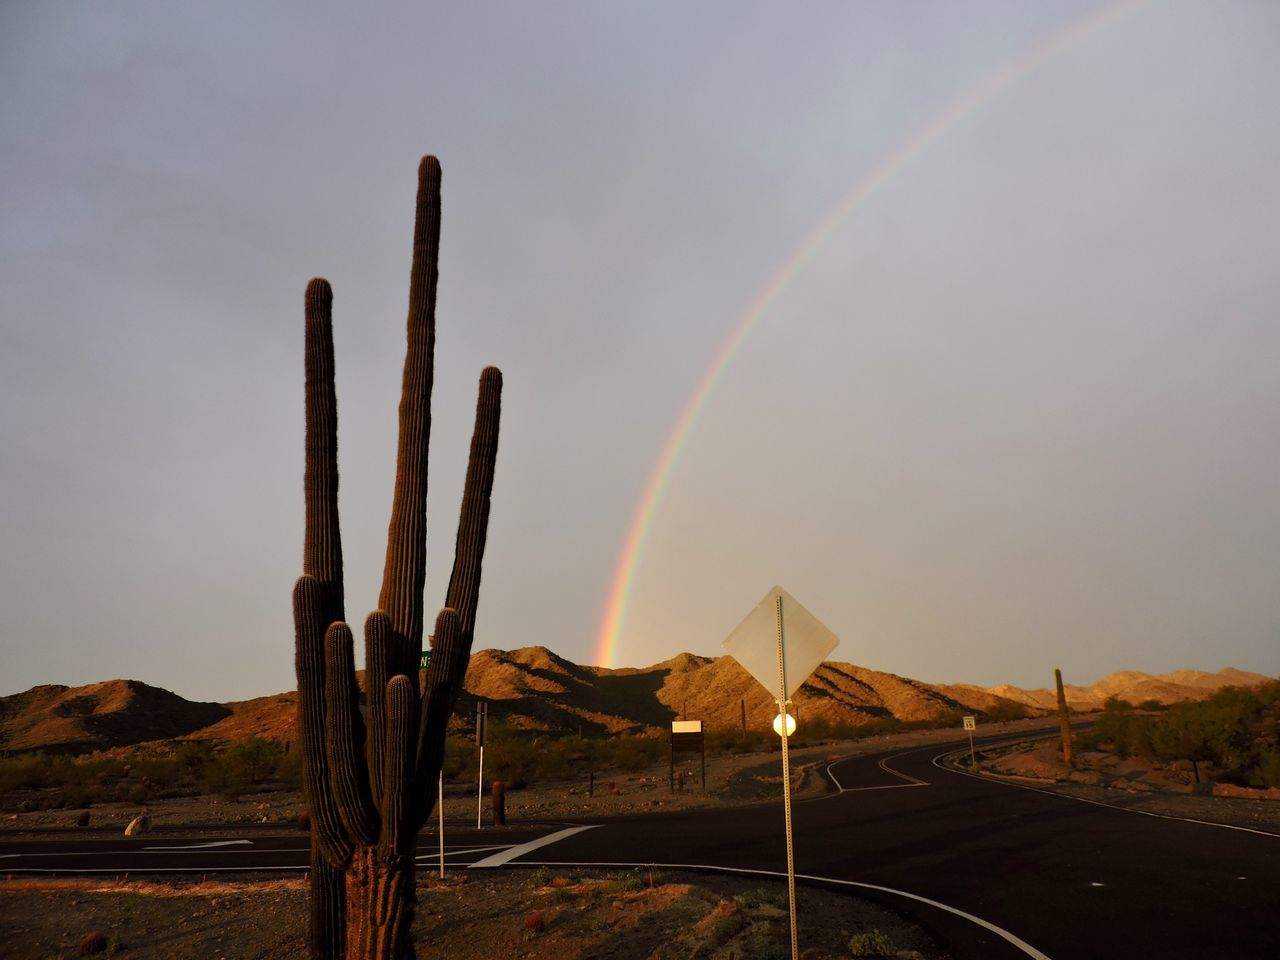 Rainbow over sky Desert Heat - Temperature Arid Climate Remote Nature Cactus Environmental Issues Outdoors Landscape Plant Growth No People Forest Fire Scenics Sky Ecosystem  Beauty In Nature Day